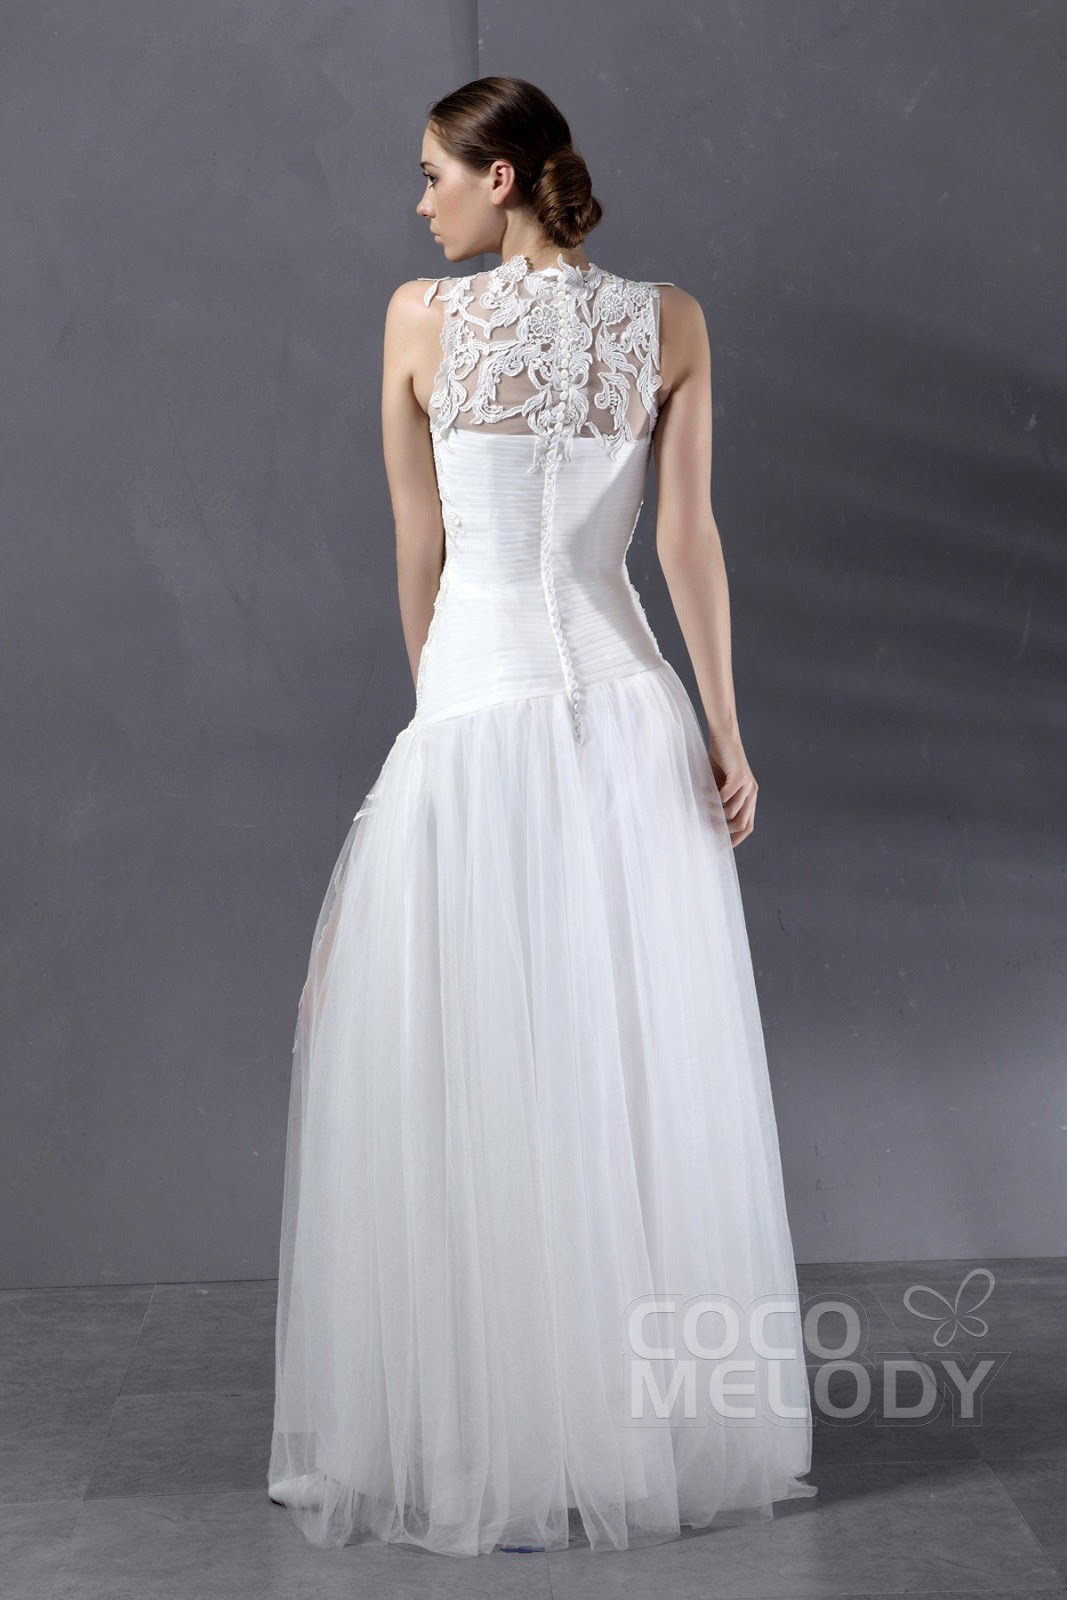 2013 the most beautiful wedding dress: Classy wedding dresses are ...